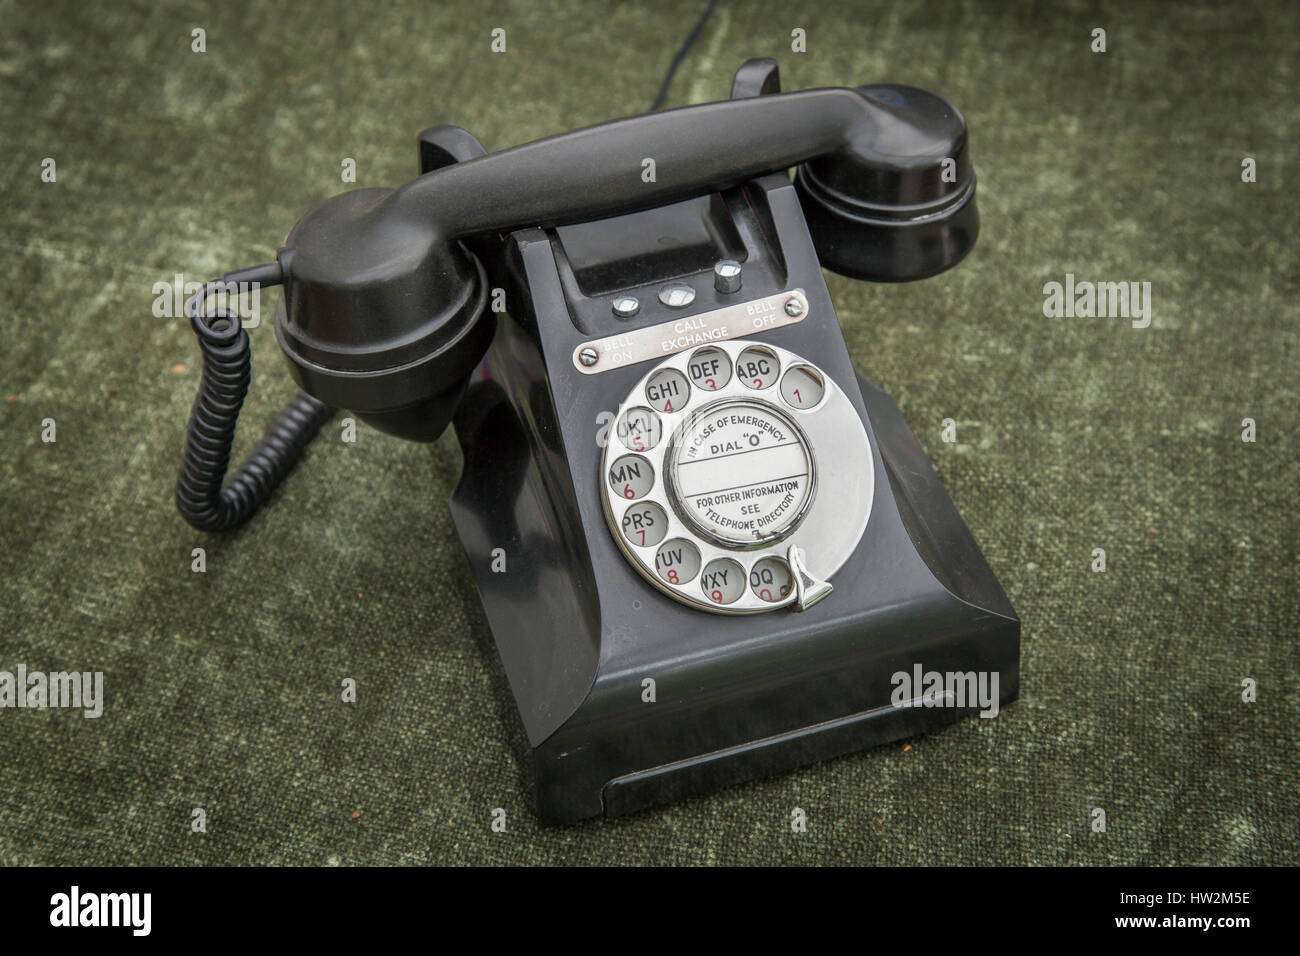 Old fashioned bakelite type plastic phone handset with rotary dial. - Stock Image